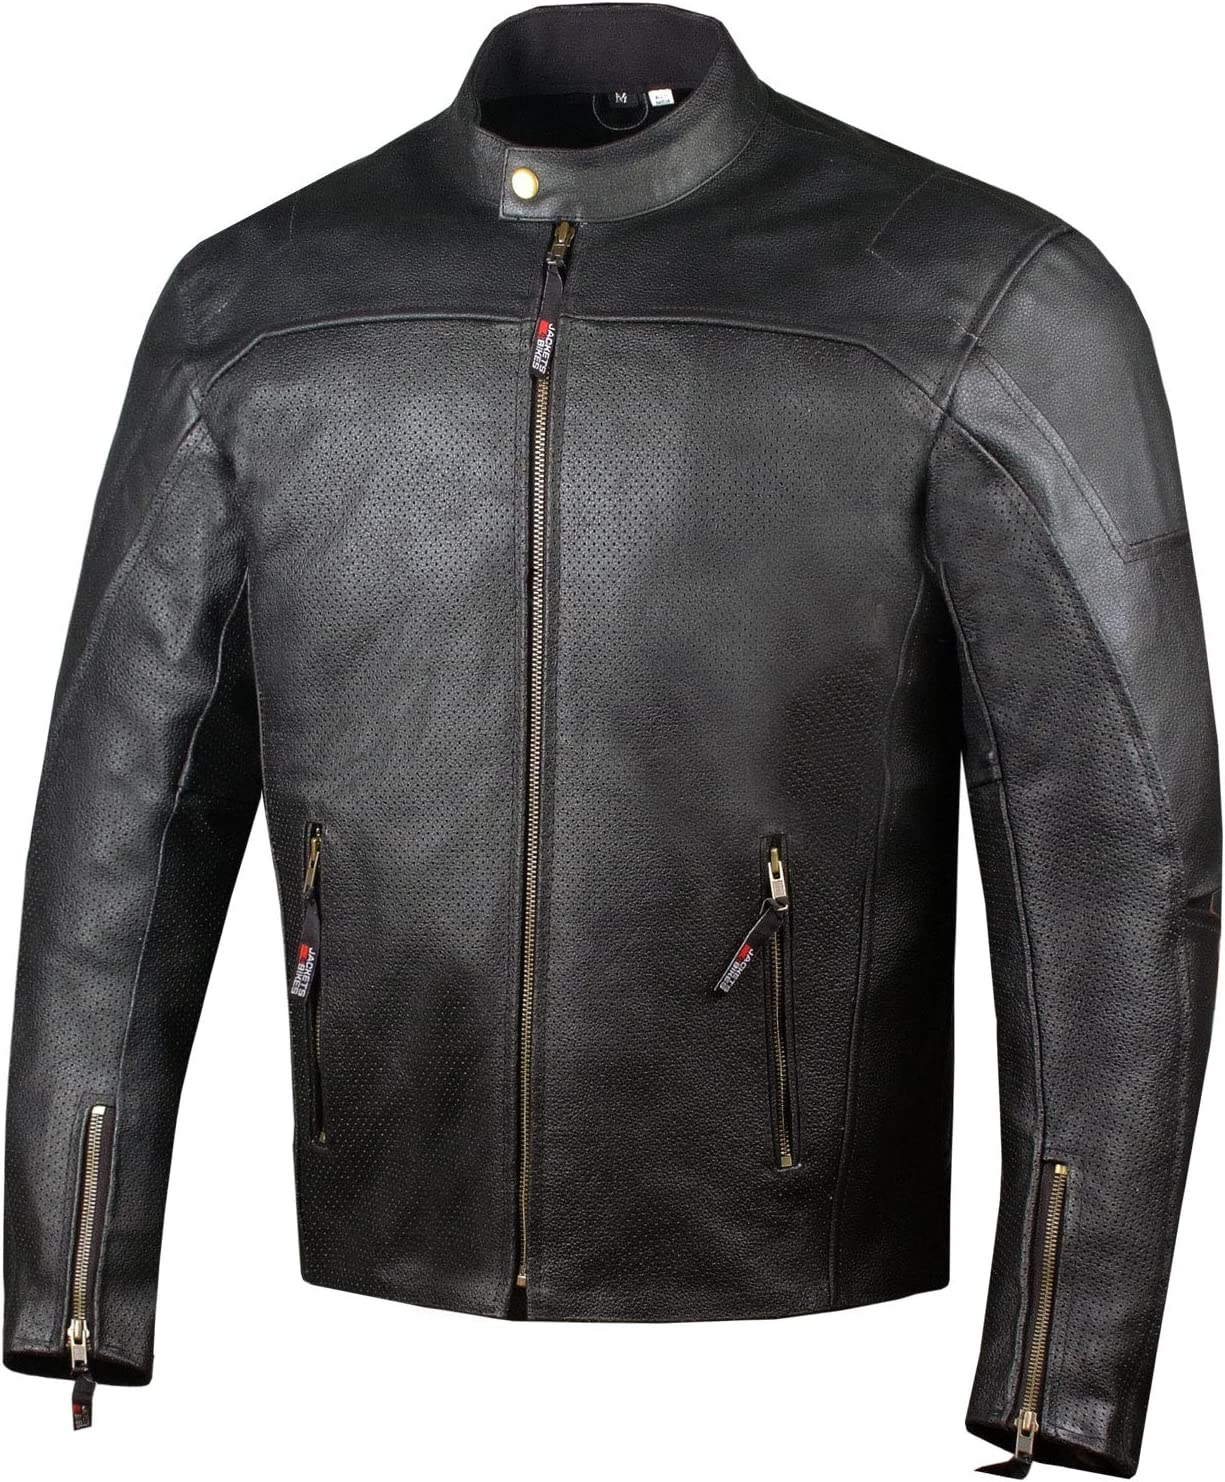 Men's Airflow Perforated Leather Outlet ☆ Free Shipping Protected CE Armor Motorcycle Large special price B